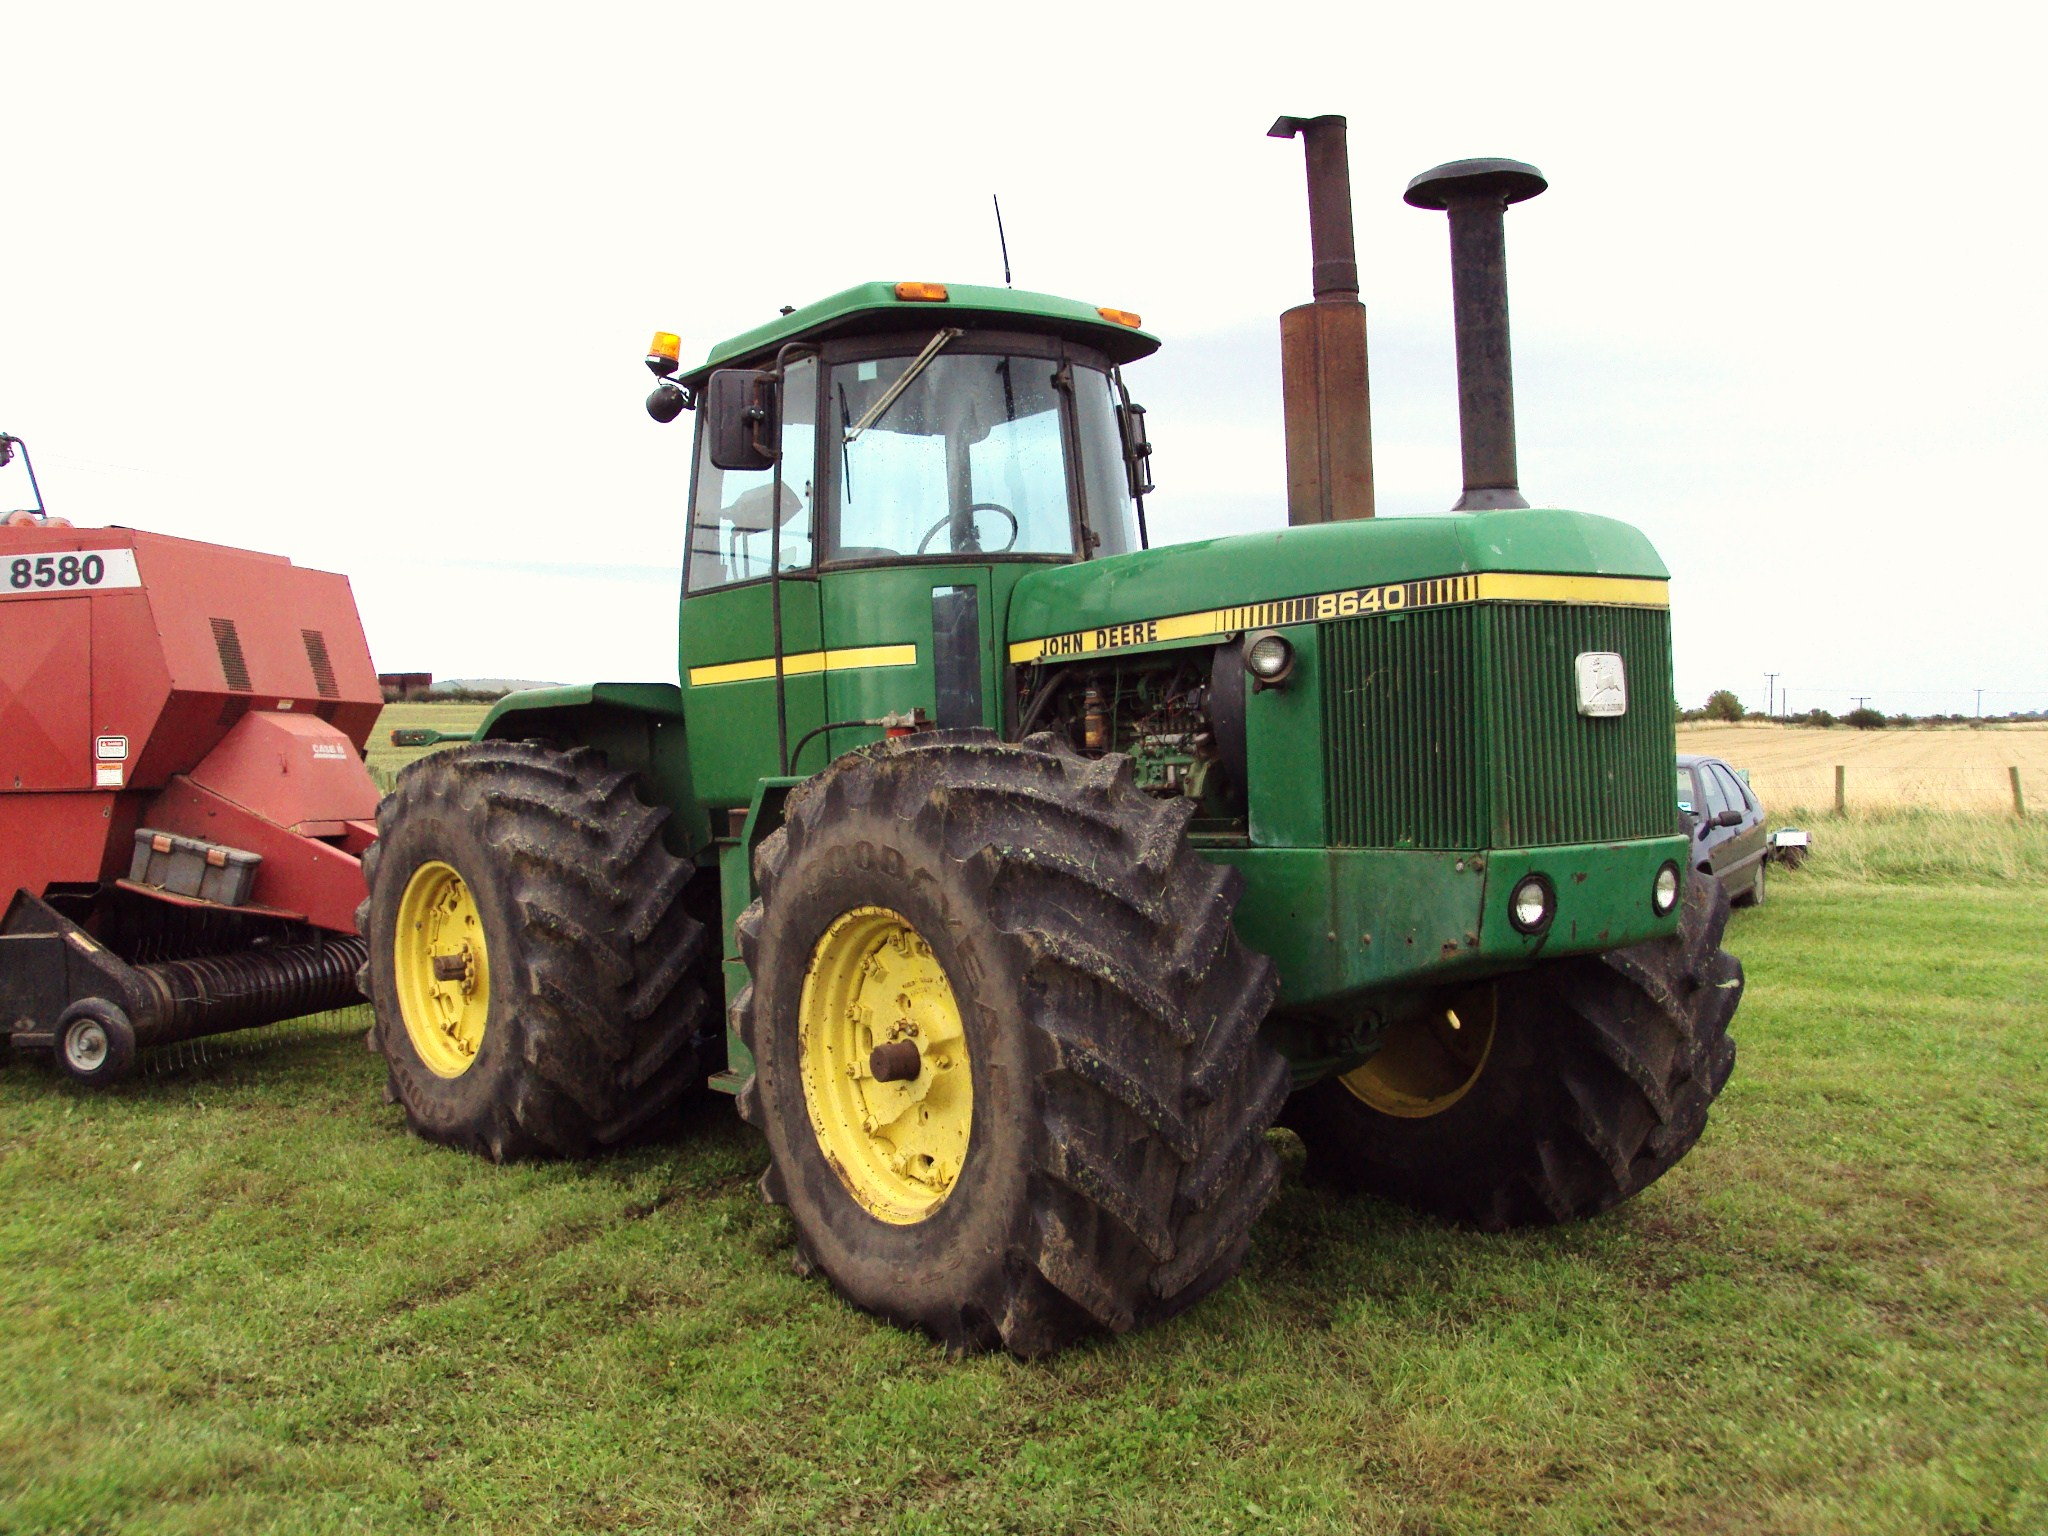 List Of John Deere Tractors Tractor Construction Plant Wiki 180 Wiring Diagram In Addition 445 Lawn 8640